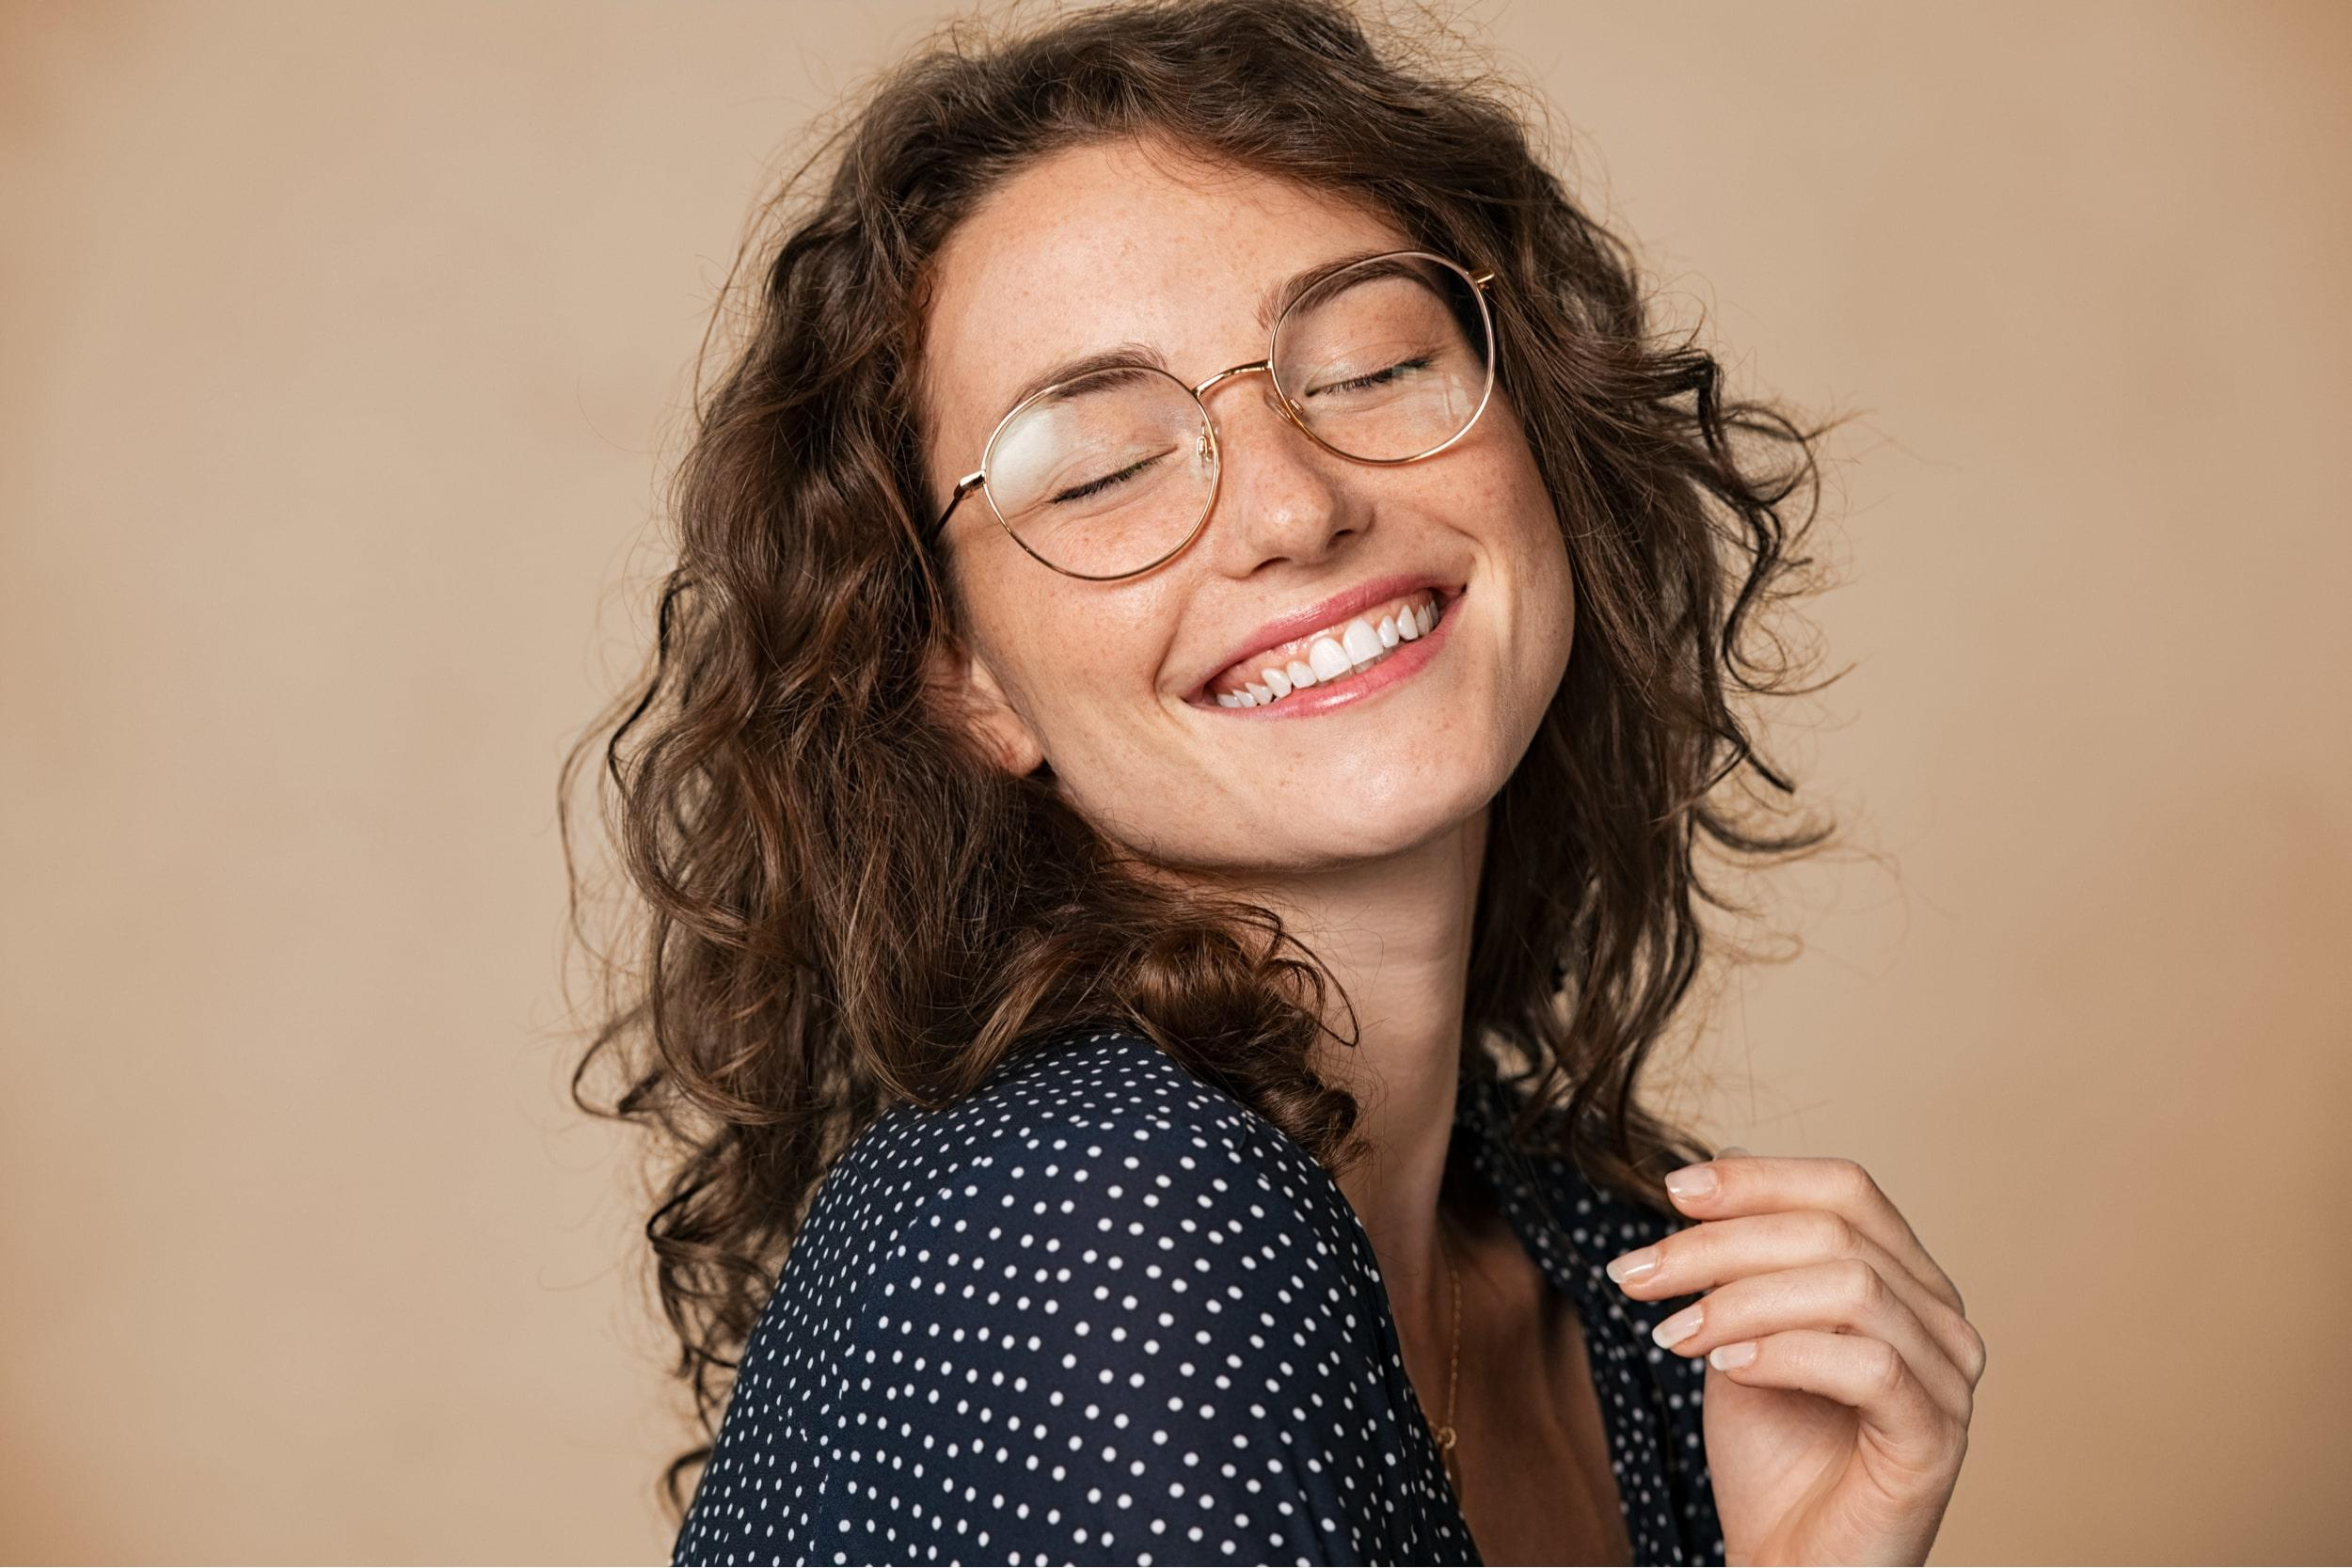 Smiling with glasses